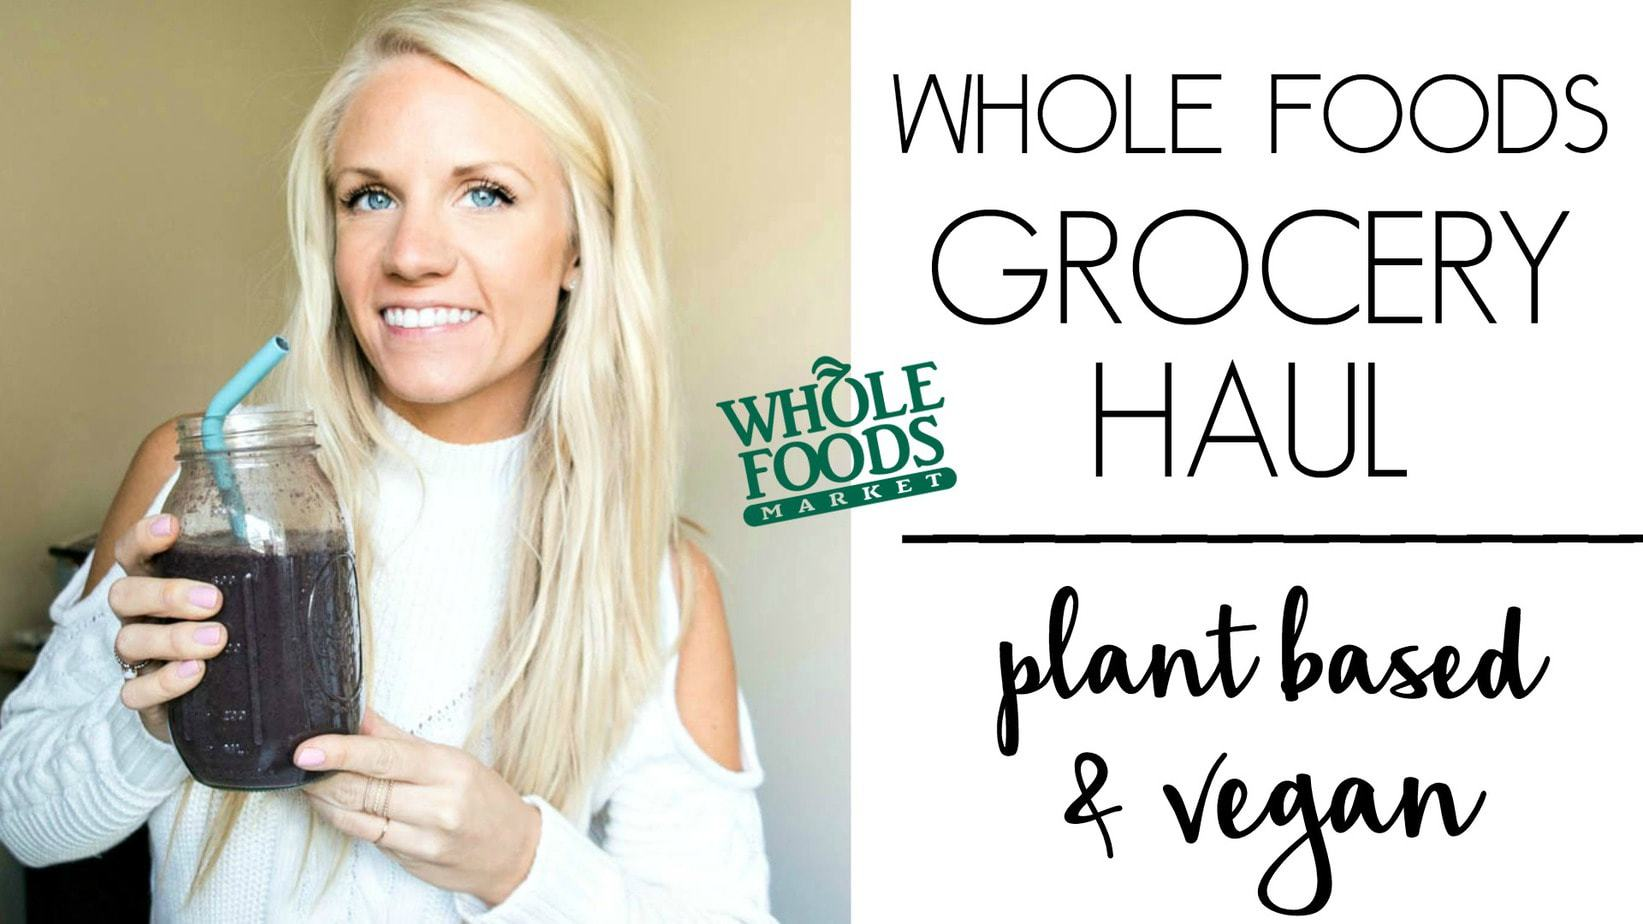 Whole Foods Grocery Haul